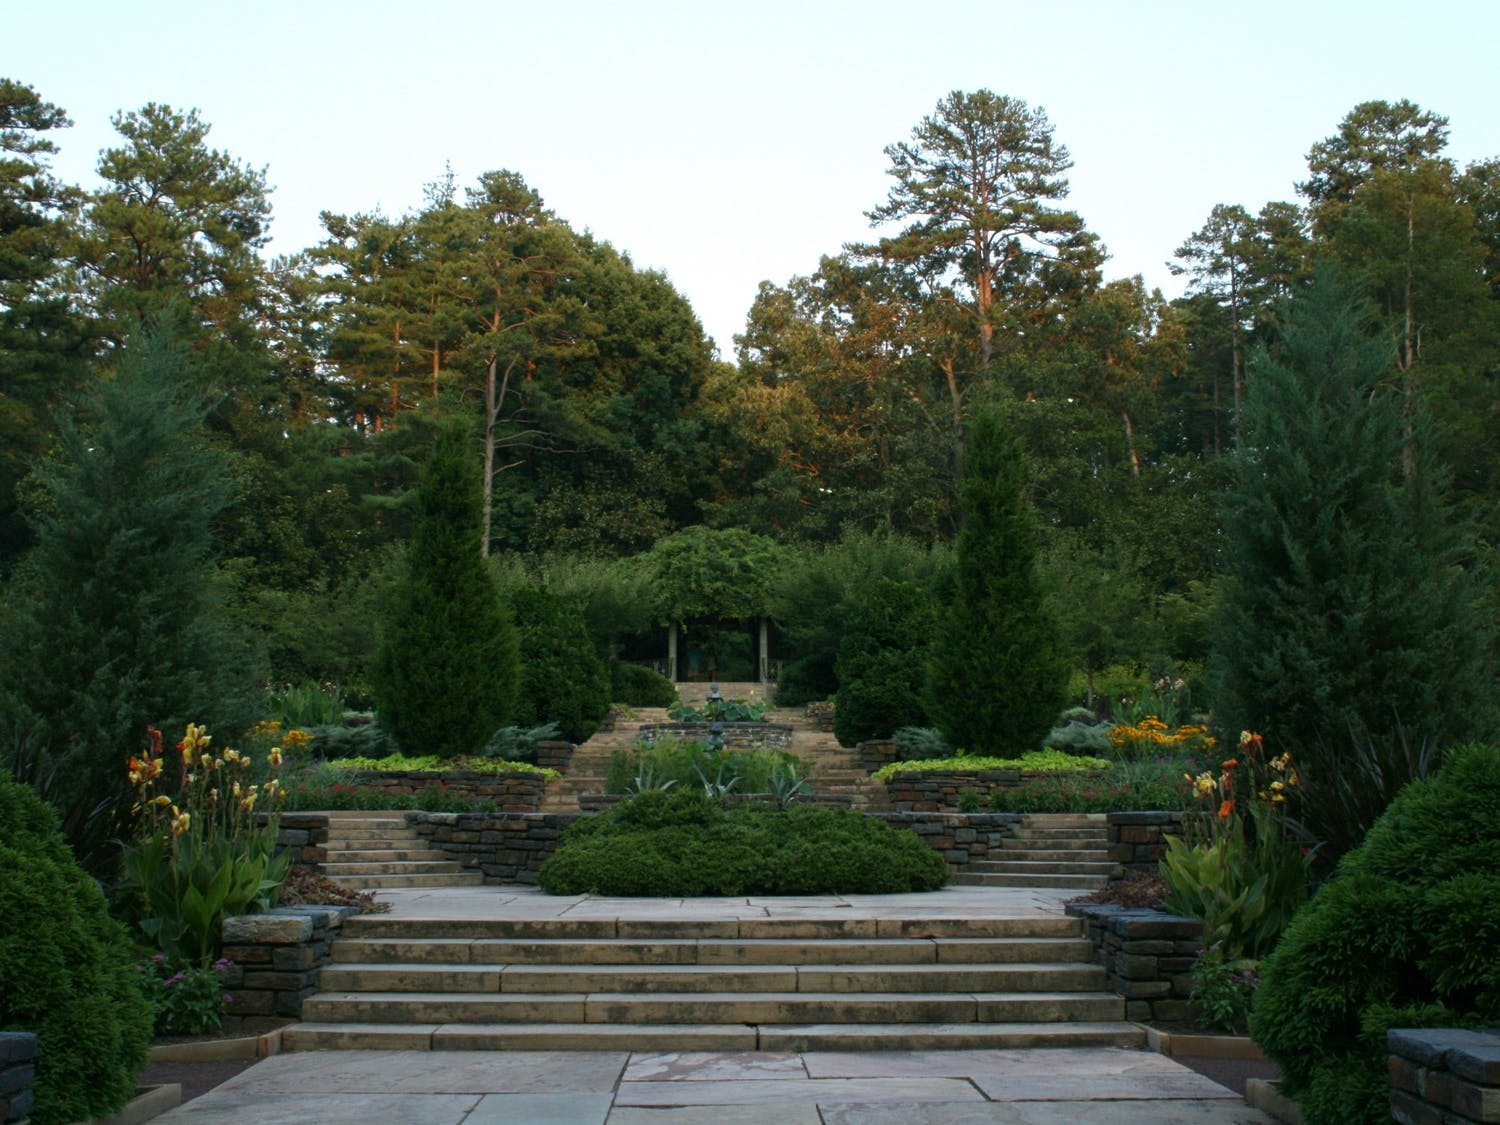 Guided study breaks are one way for students to access the Duke Gardens, which are mostly closed due to the COVID-19 pandemic.